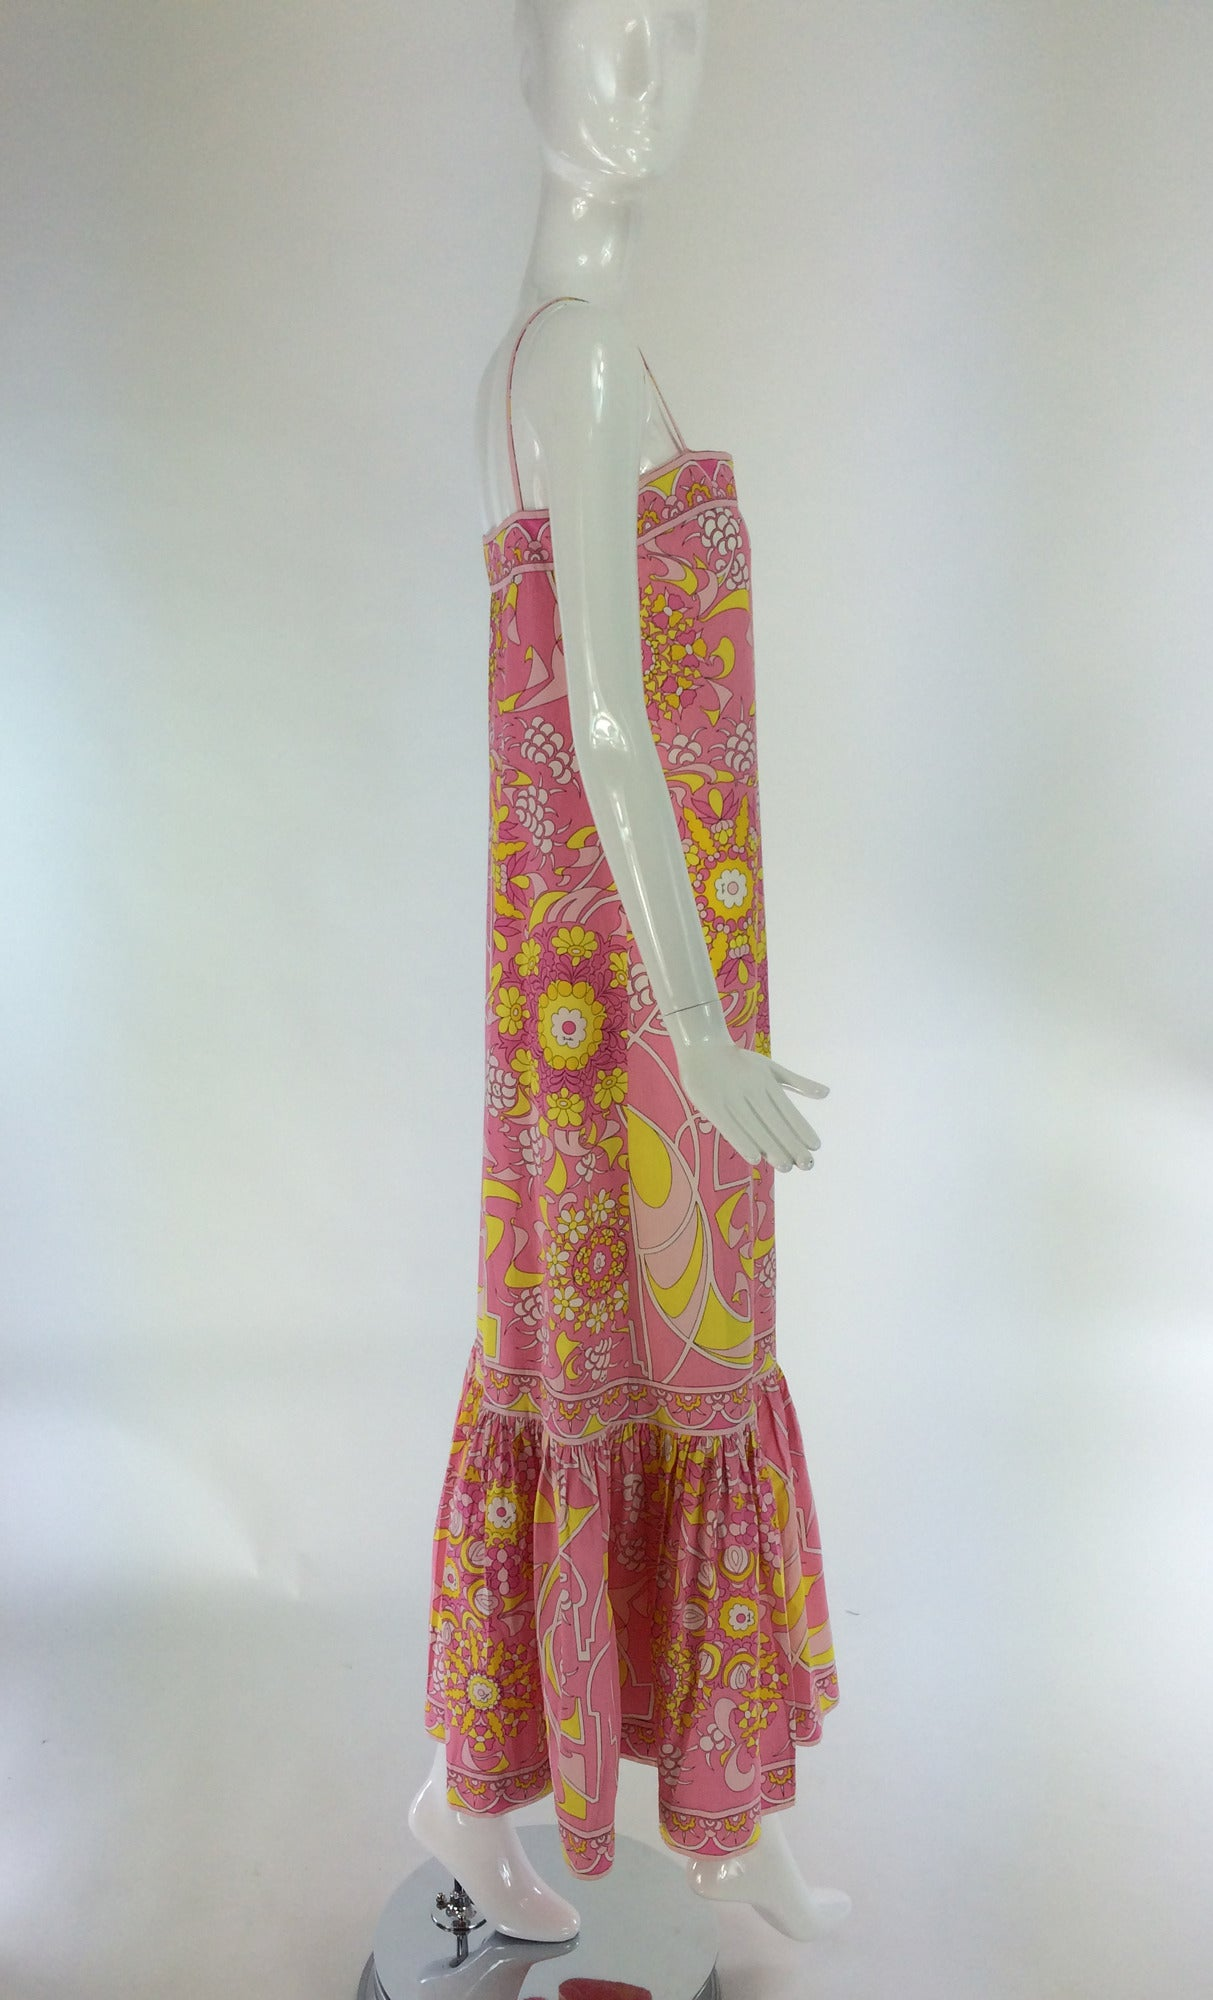 Women's Emilio Pucci printed cotton maxi dress out of the ordinary design 1960s For Sale